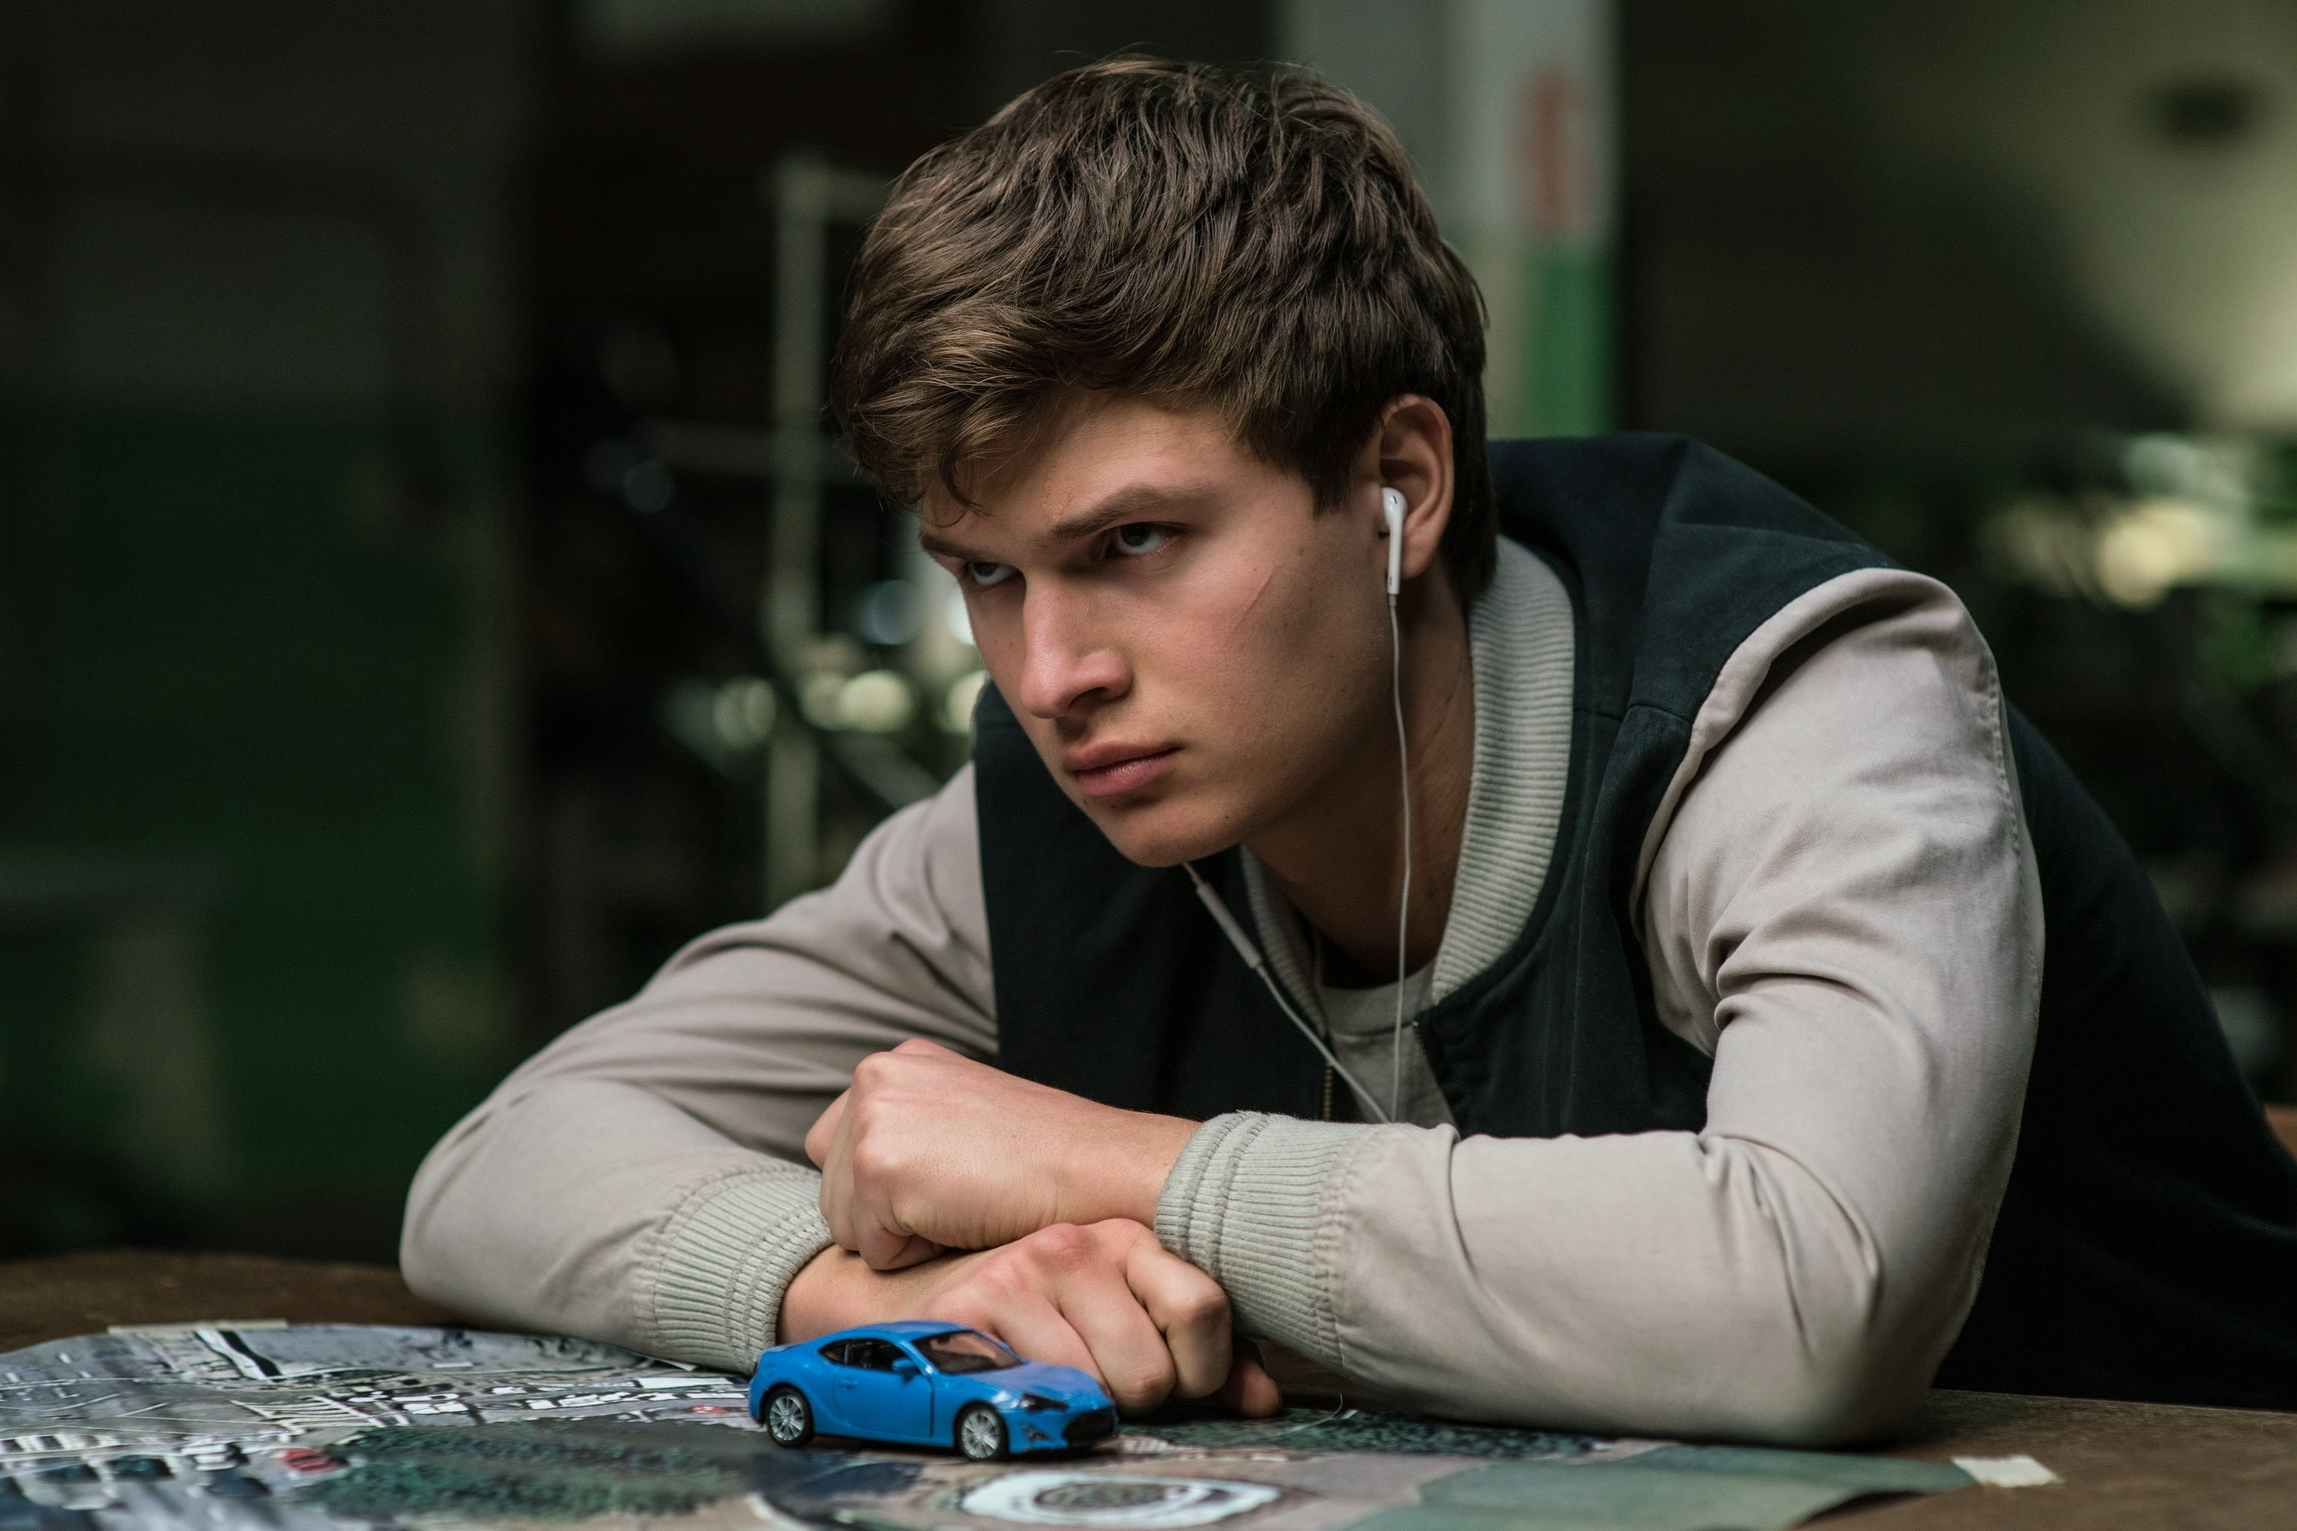 Baby Driver (2017) - Directed by: Edgar WrightWritten by: Edgar Wright